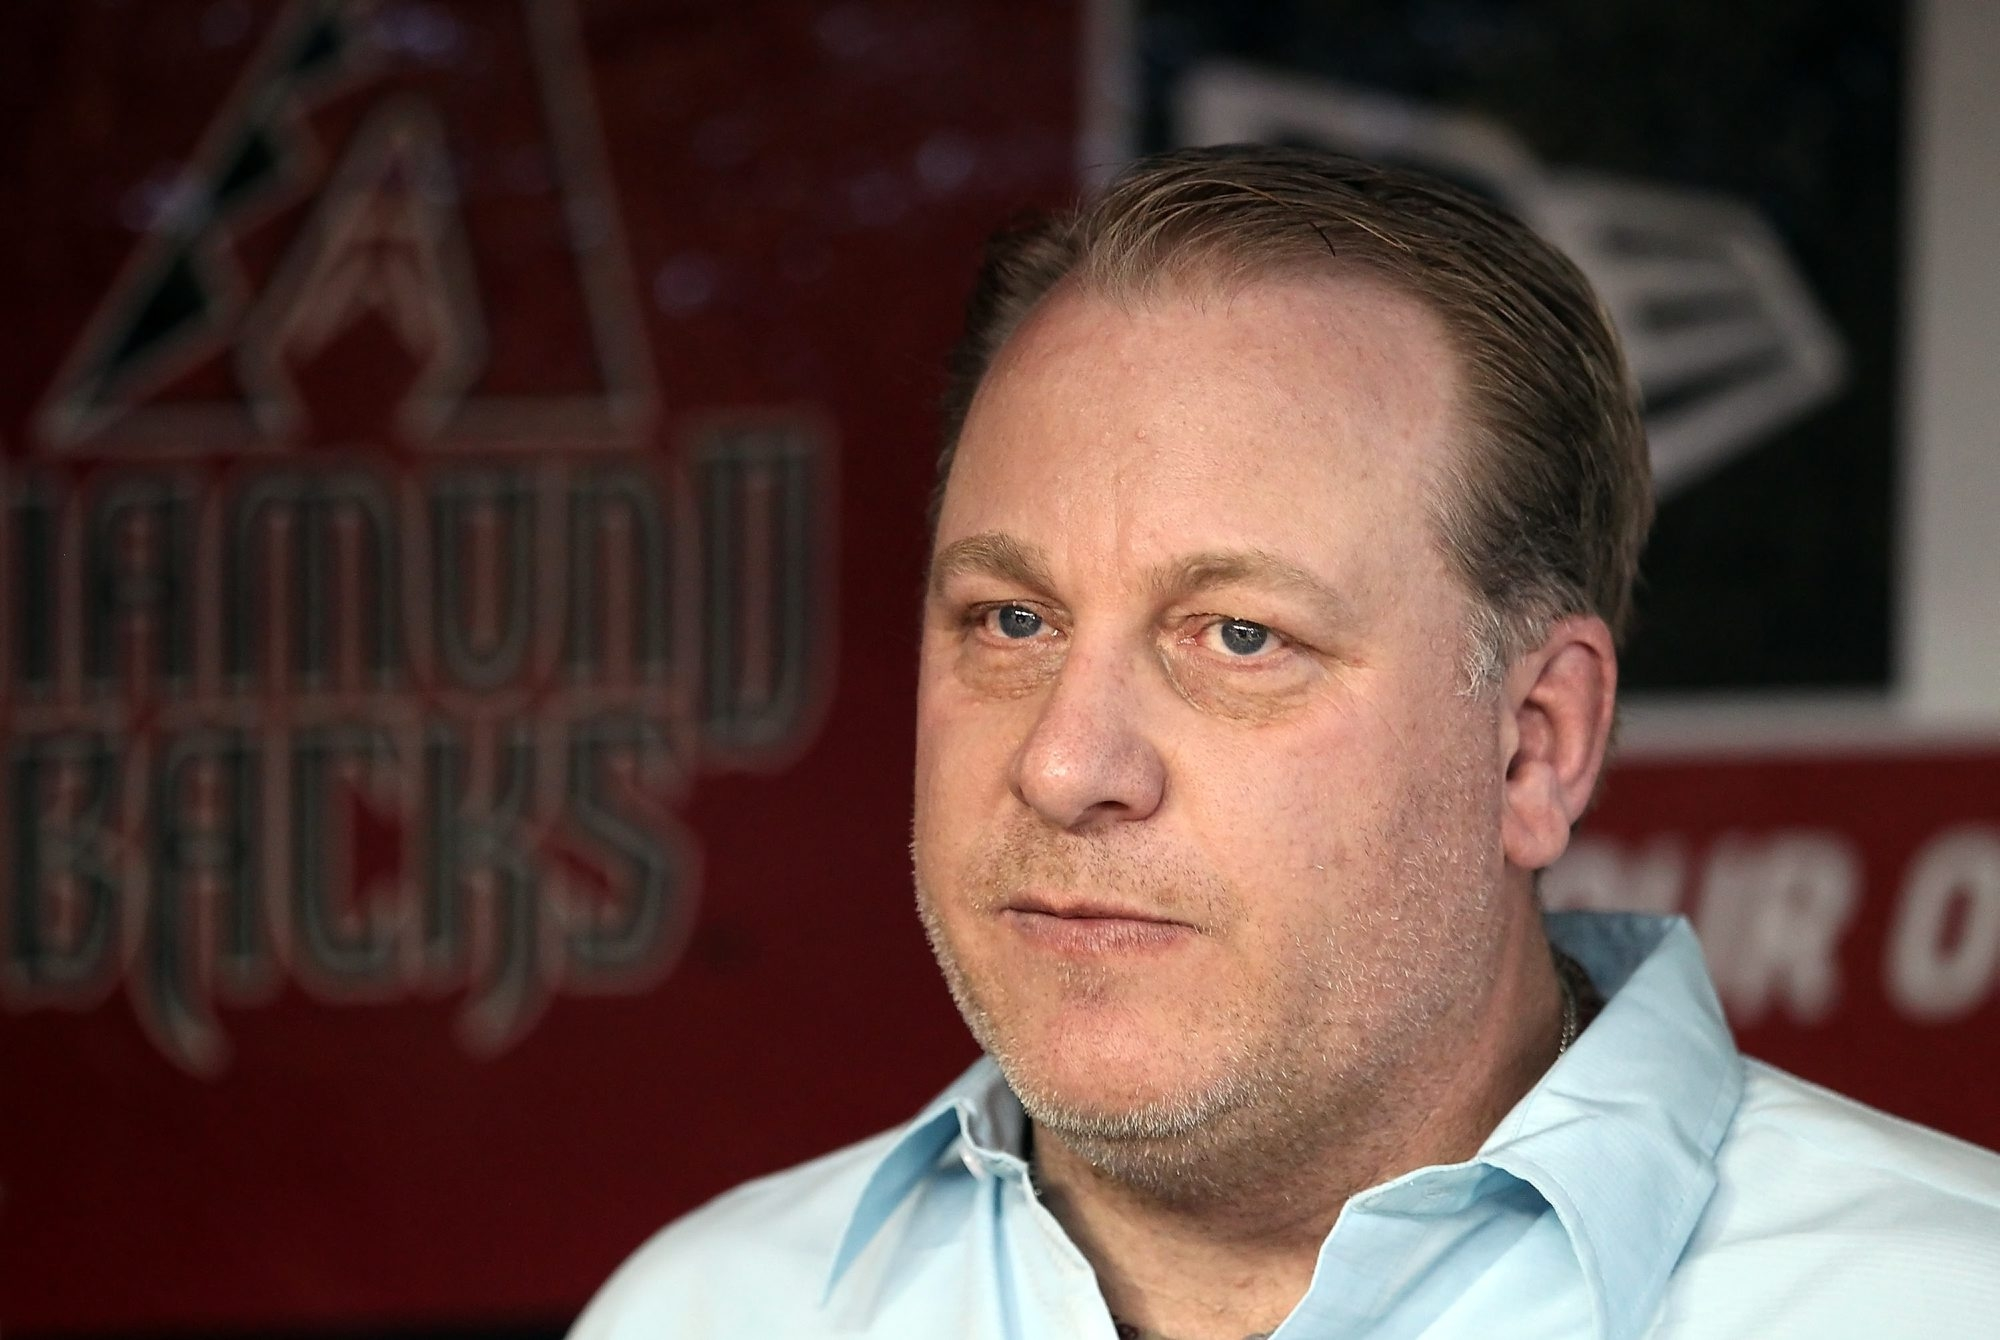 Curt Schilling lost his ESPN Sunday Night Baseball gig last season and now is out of a broadcasting job all together.